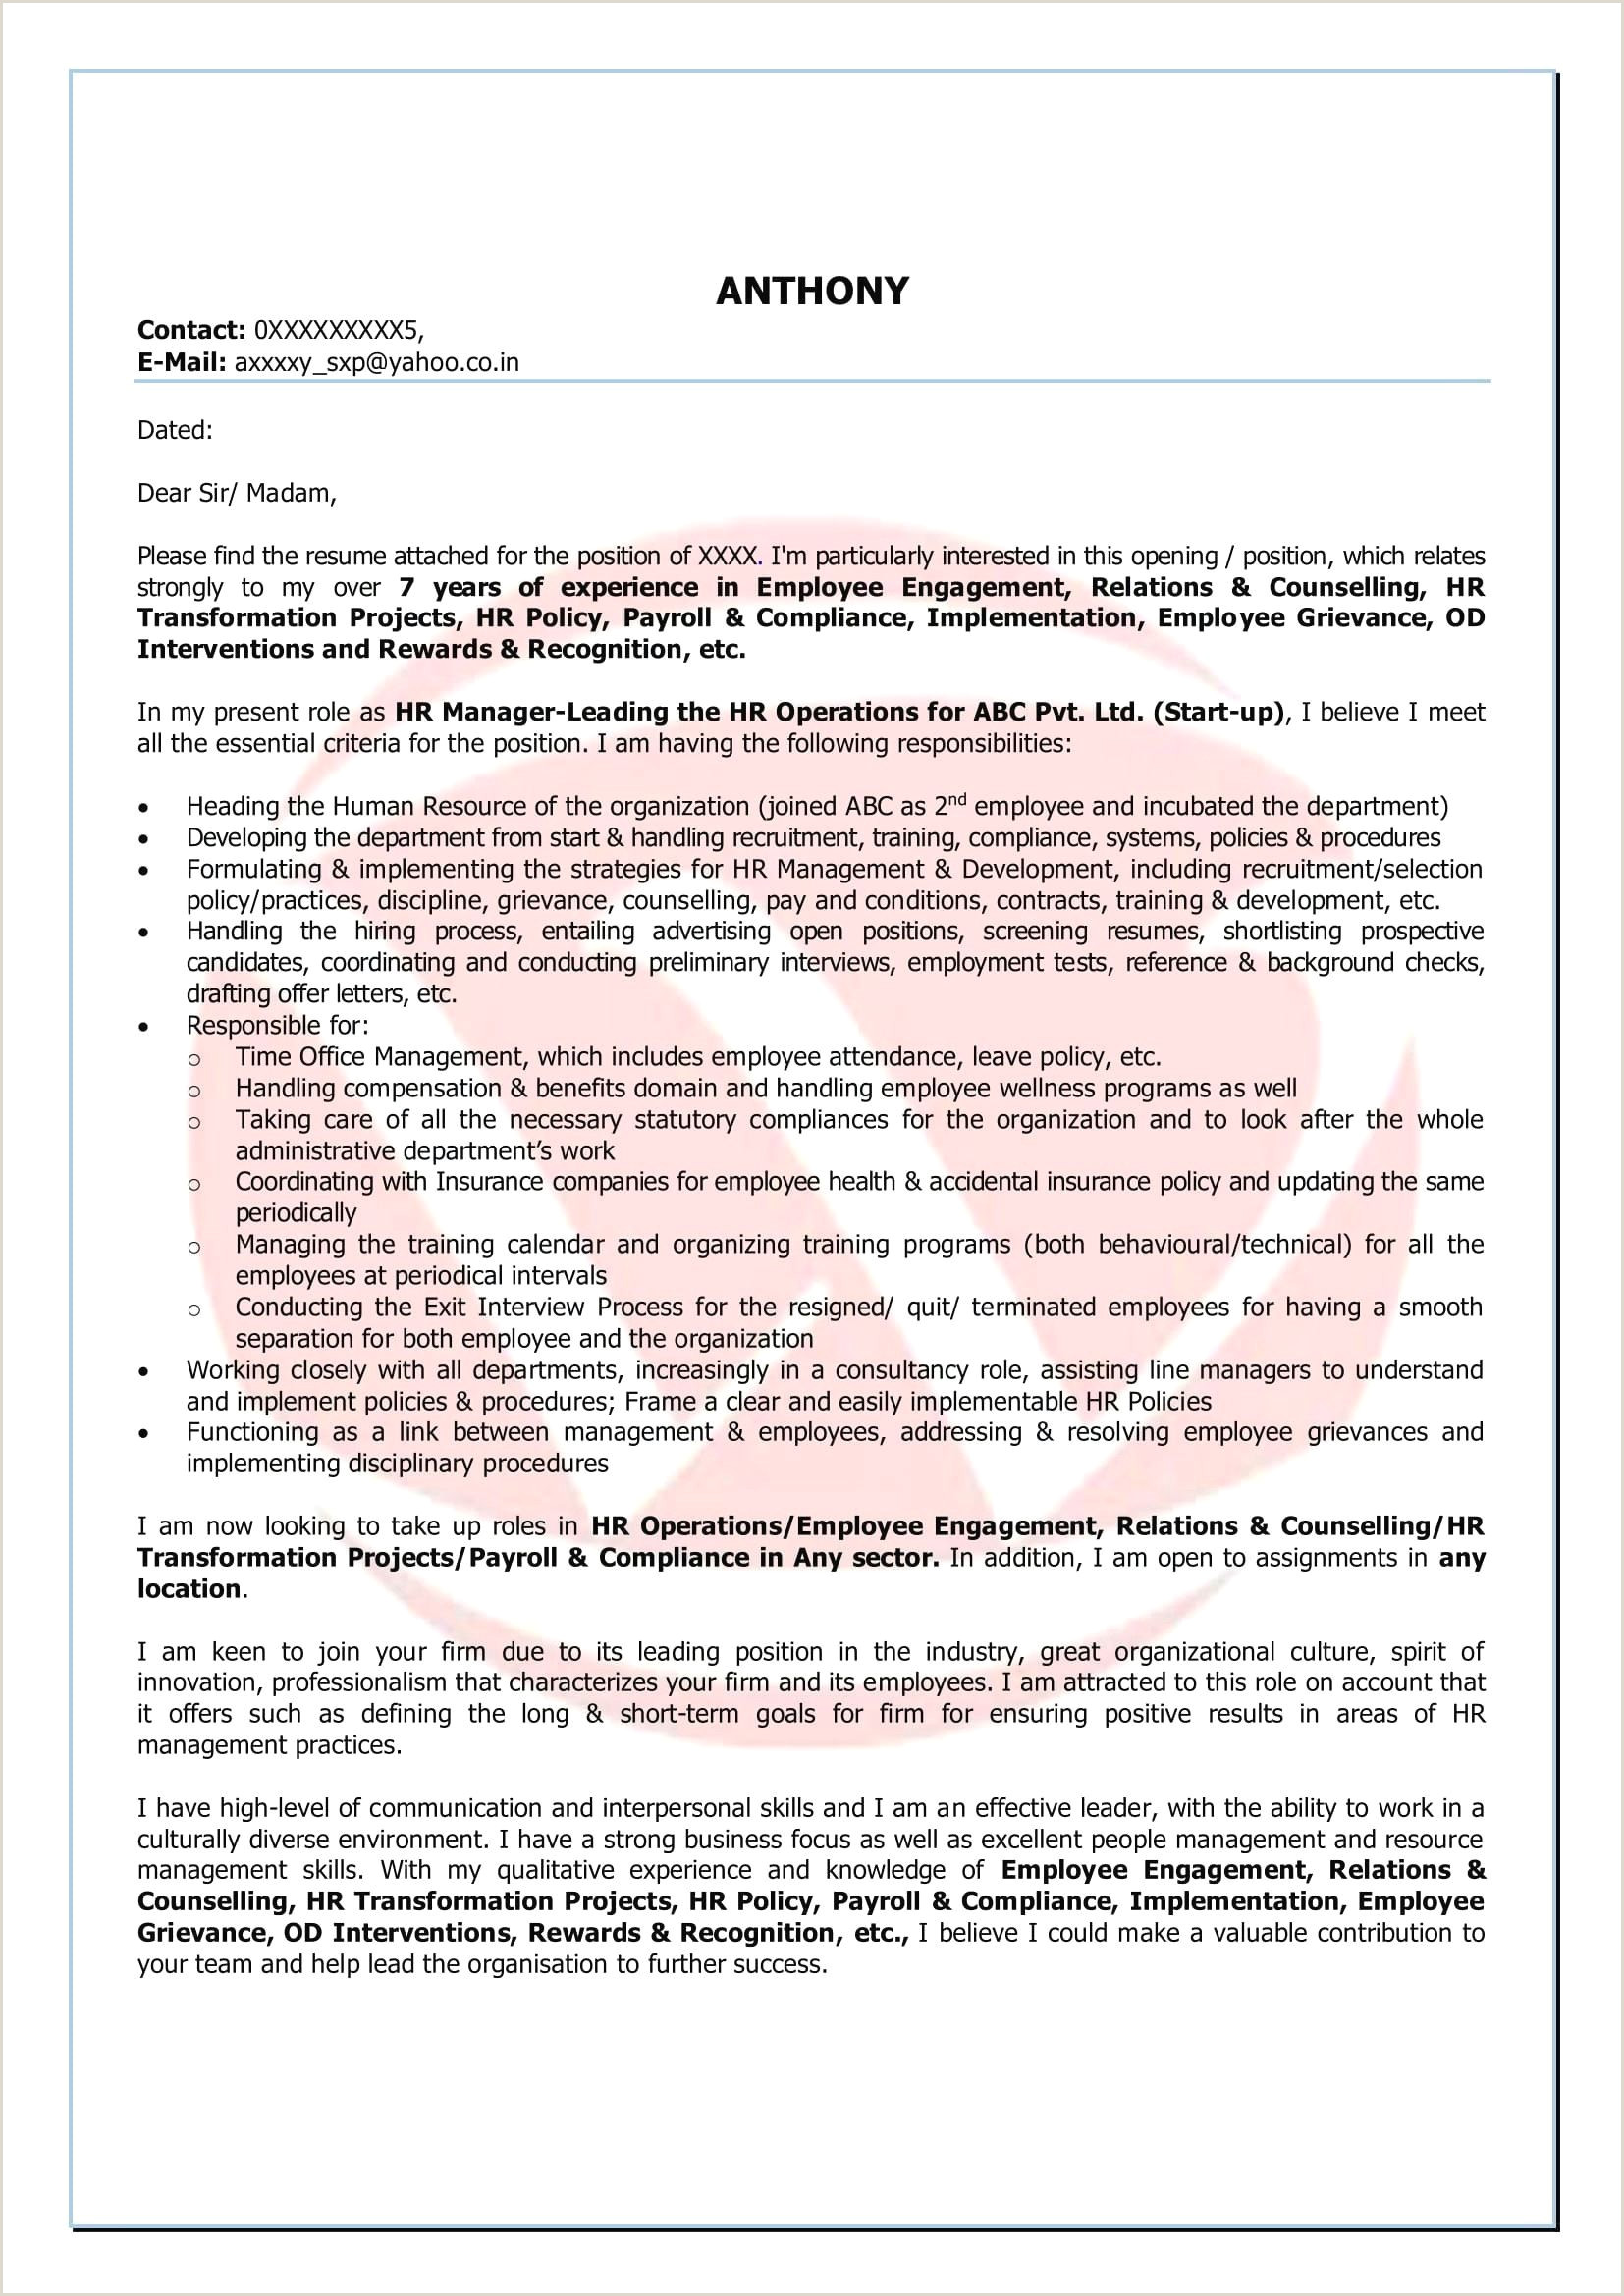 10 Construction Management Resume Examples